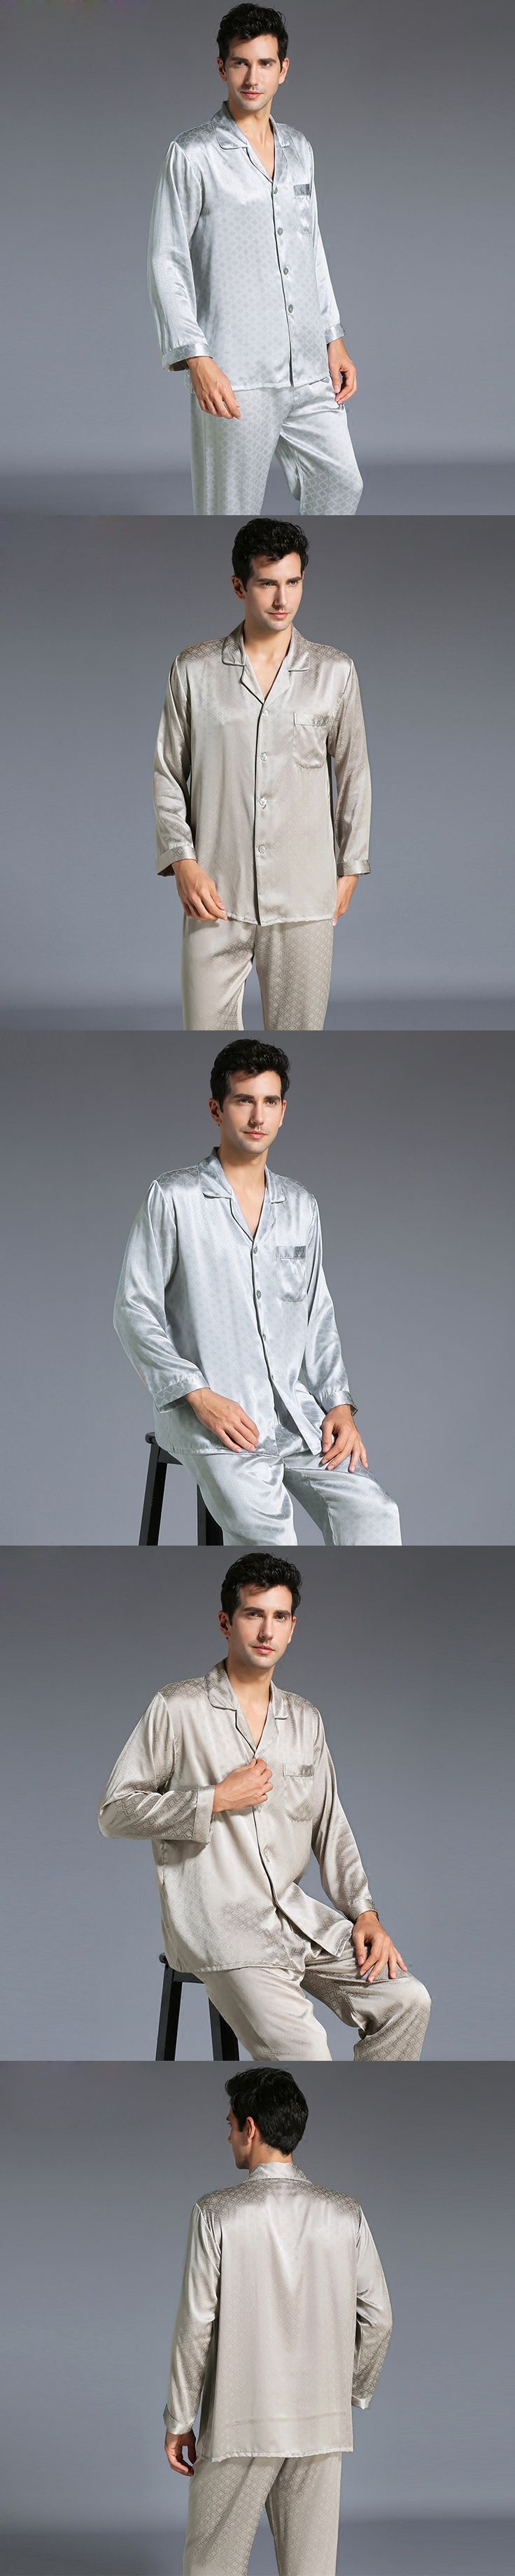 New Autumn Men's Silk Pajamas Long-Sleeve Two Pieces Set Sleepwear Male 100% Silk Pajama Suit Free Shipping